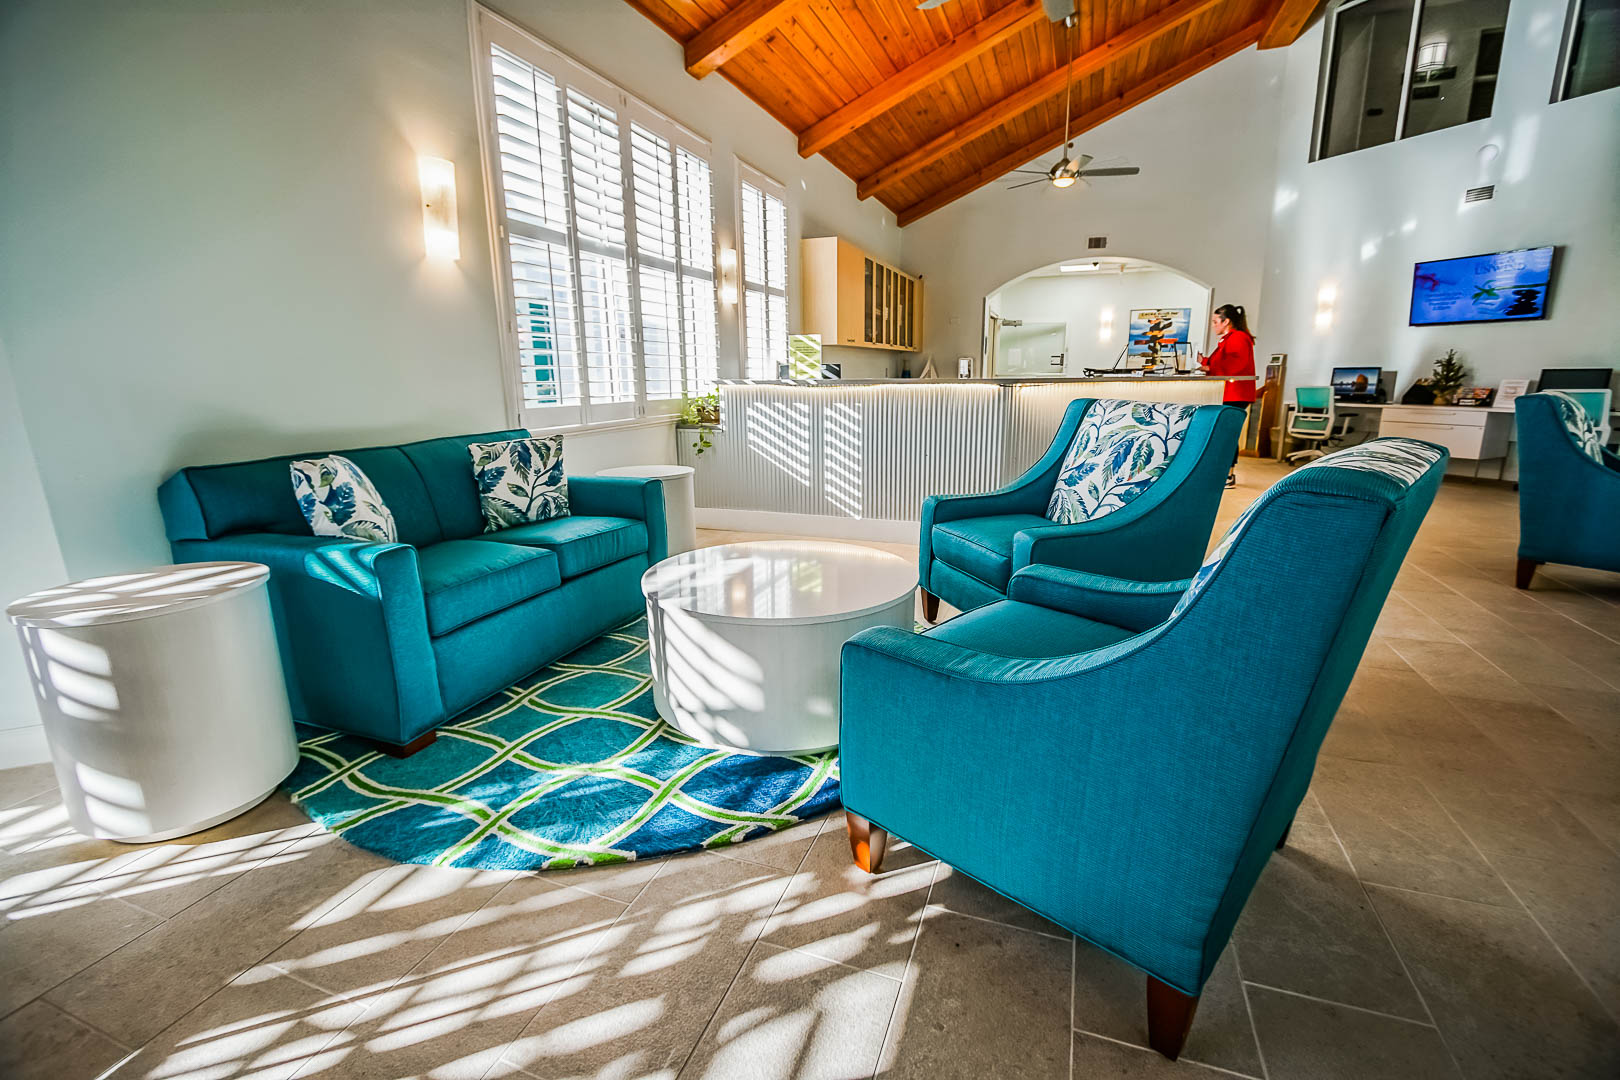 A modern and colorful resort lobby at VRI's The Resort on Cocoa Beach in Florida.